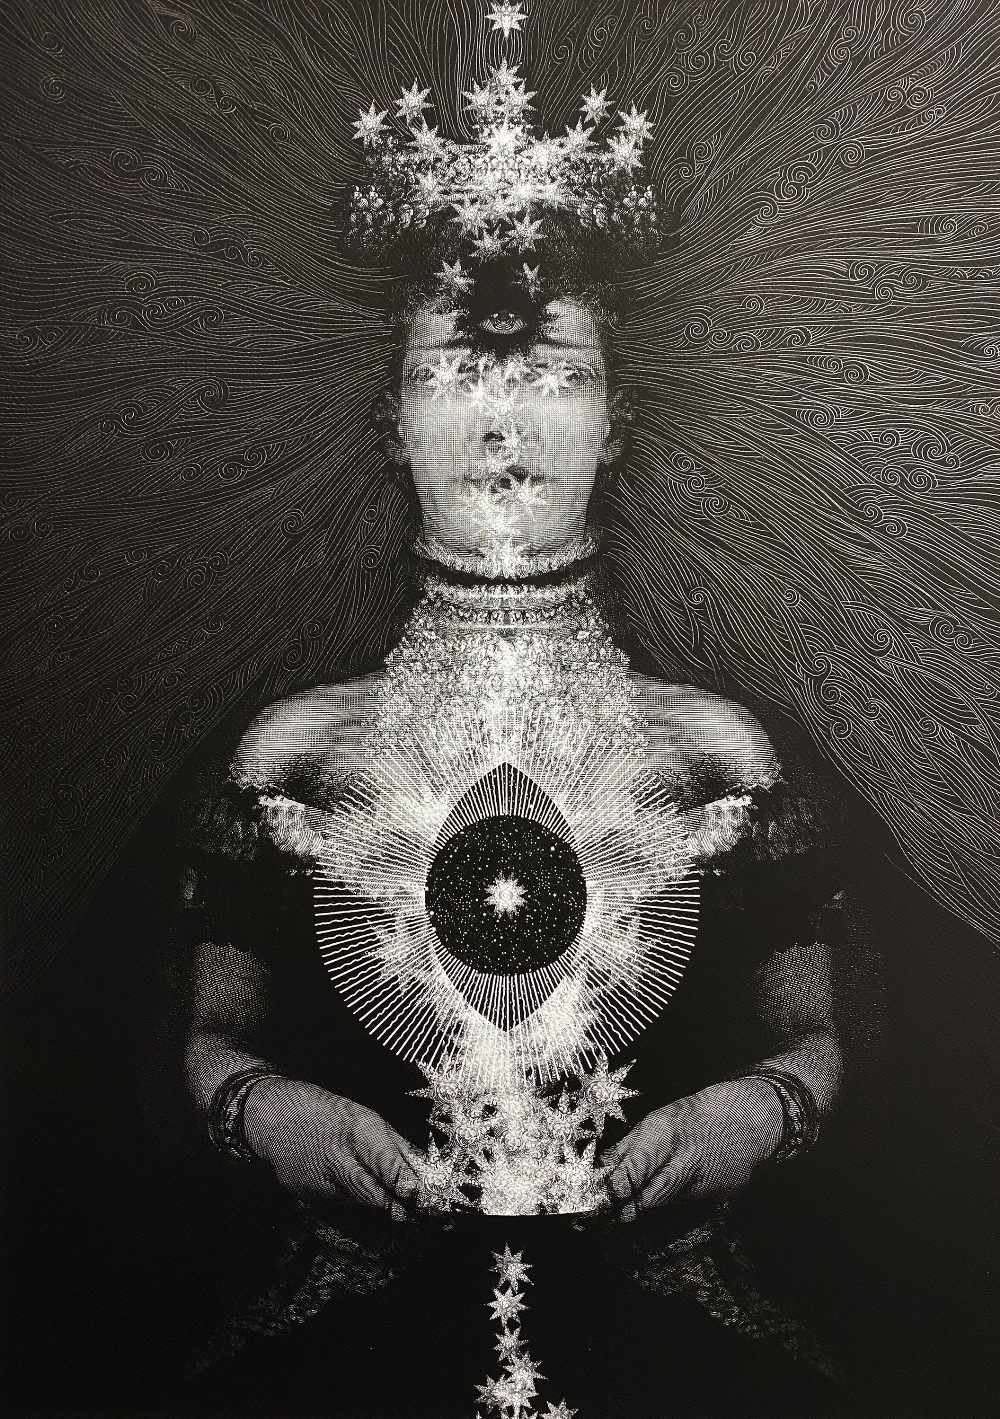 Dan Hillier (British). 'Queen of Hearts', print with hand embellished drawing . Rolled. 59 x 42cm.